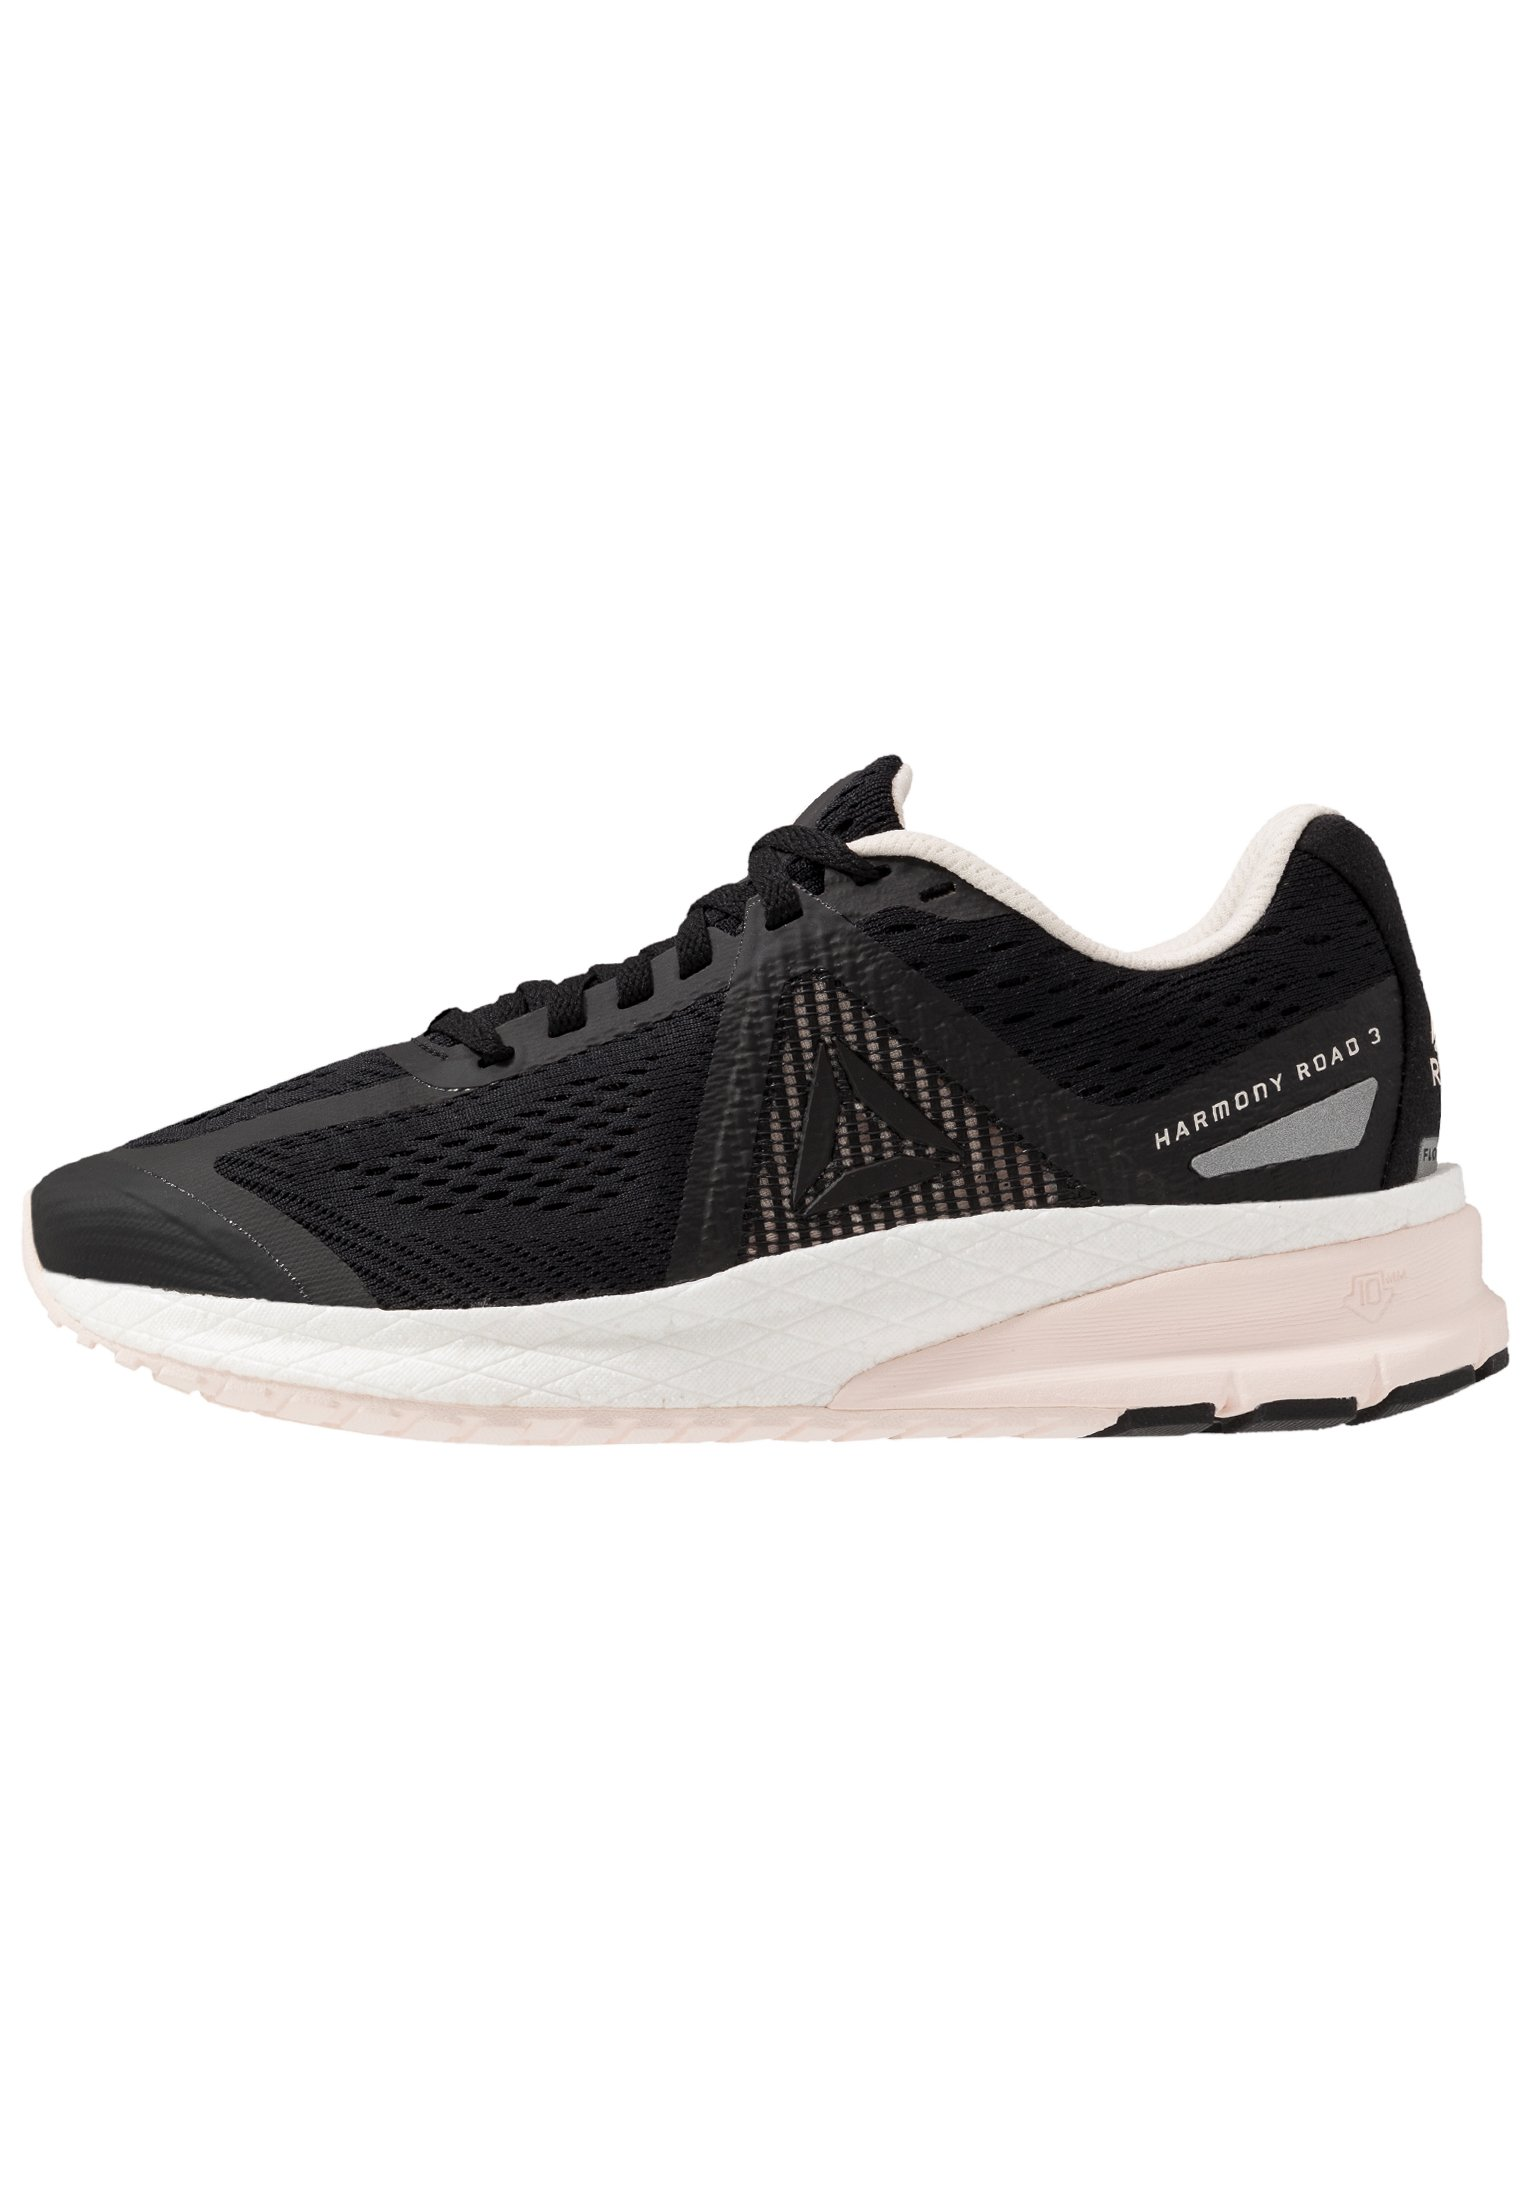 HARMONY ROAD 3 Chaussures de running neutres blackpale pinkwhite